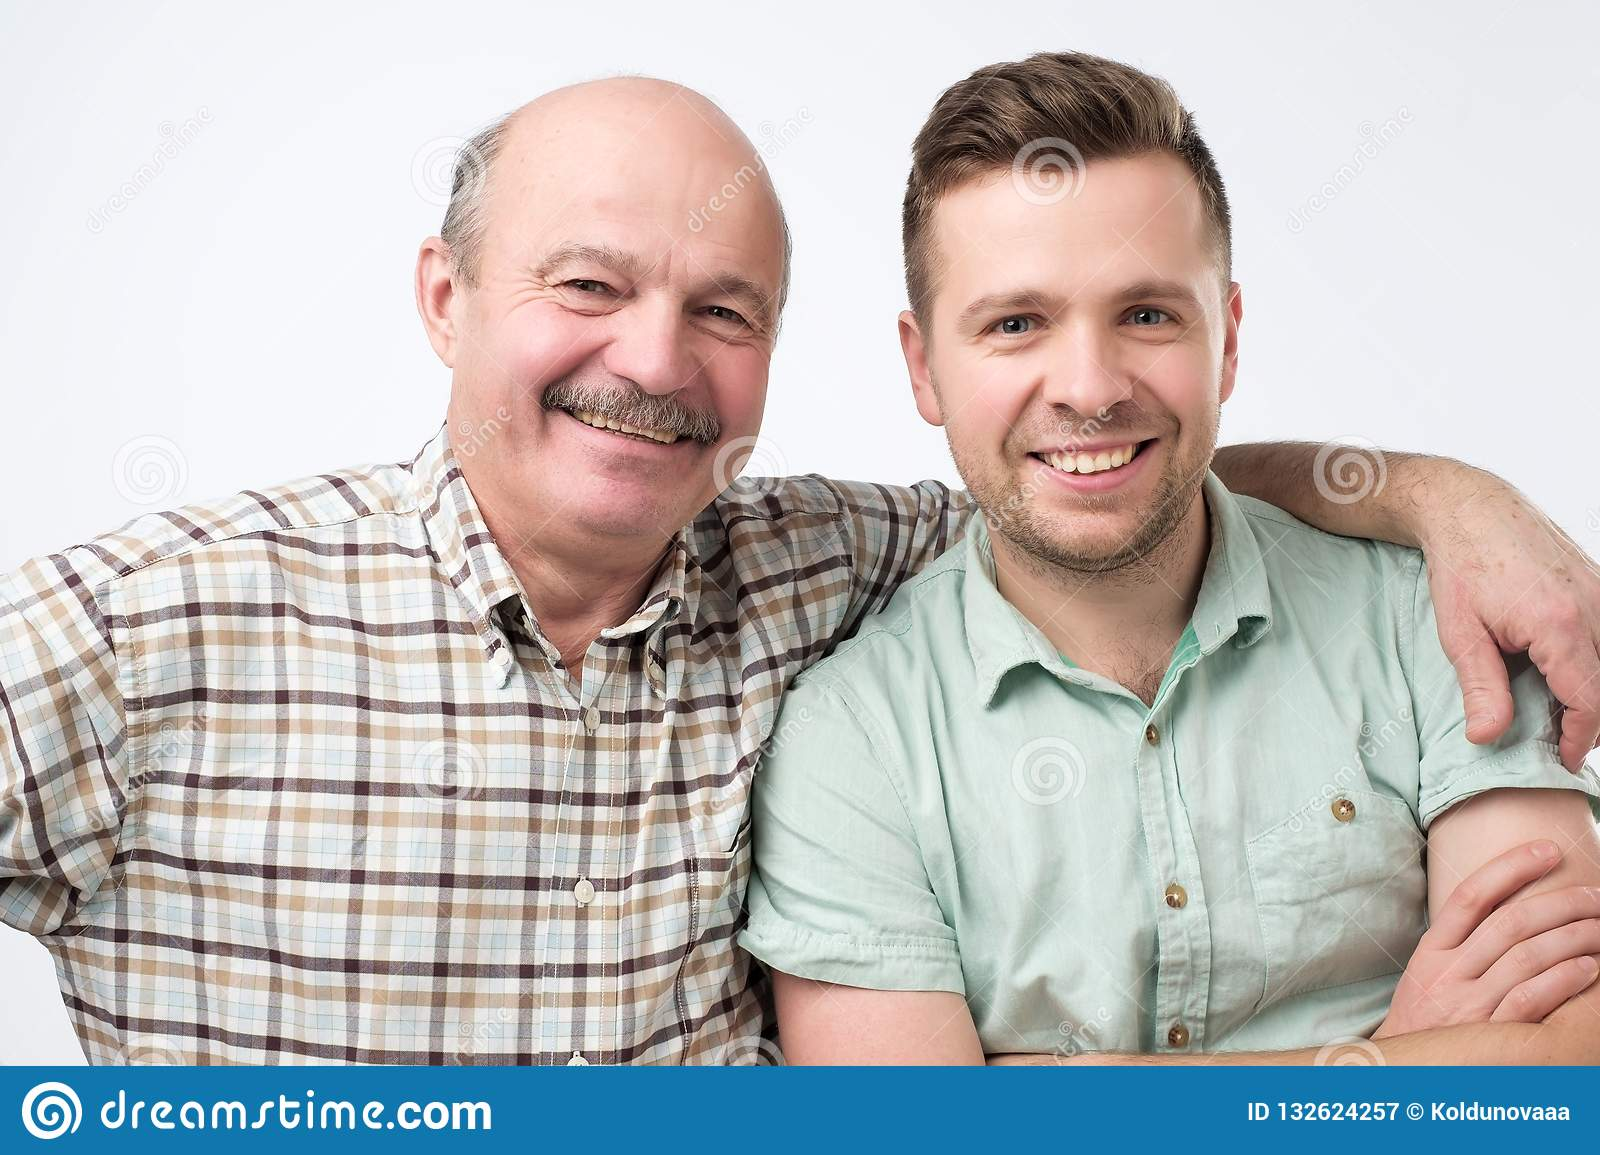 aff03437a Father And Son Standing Together And Smiling. Stock Image - Image of ...